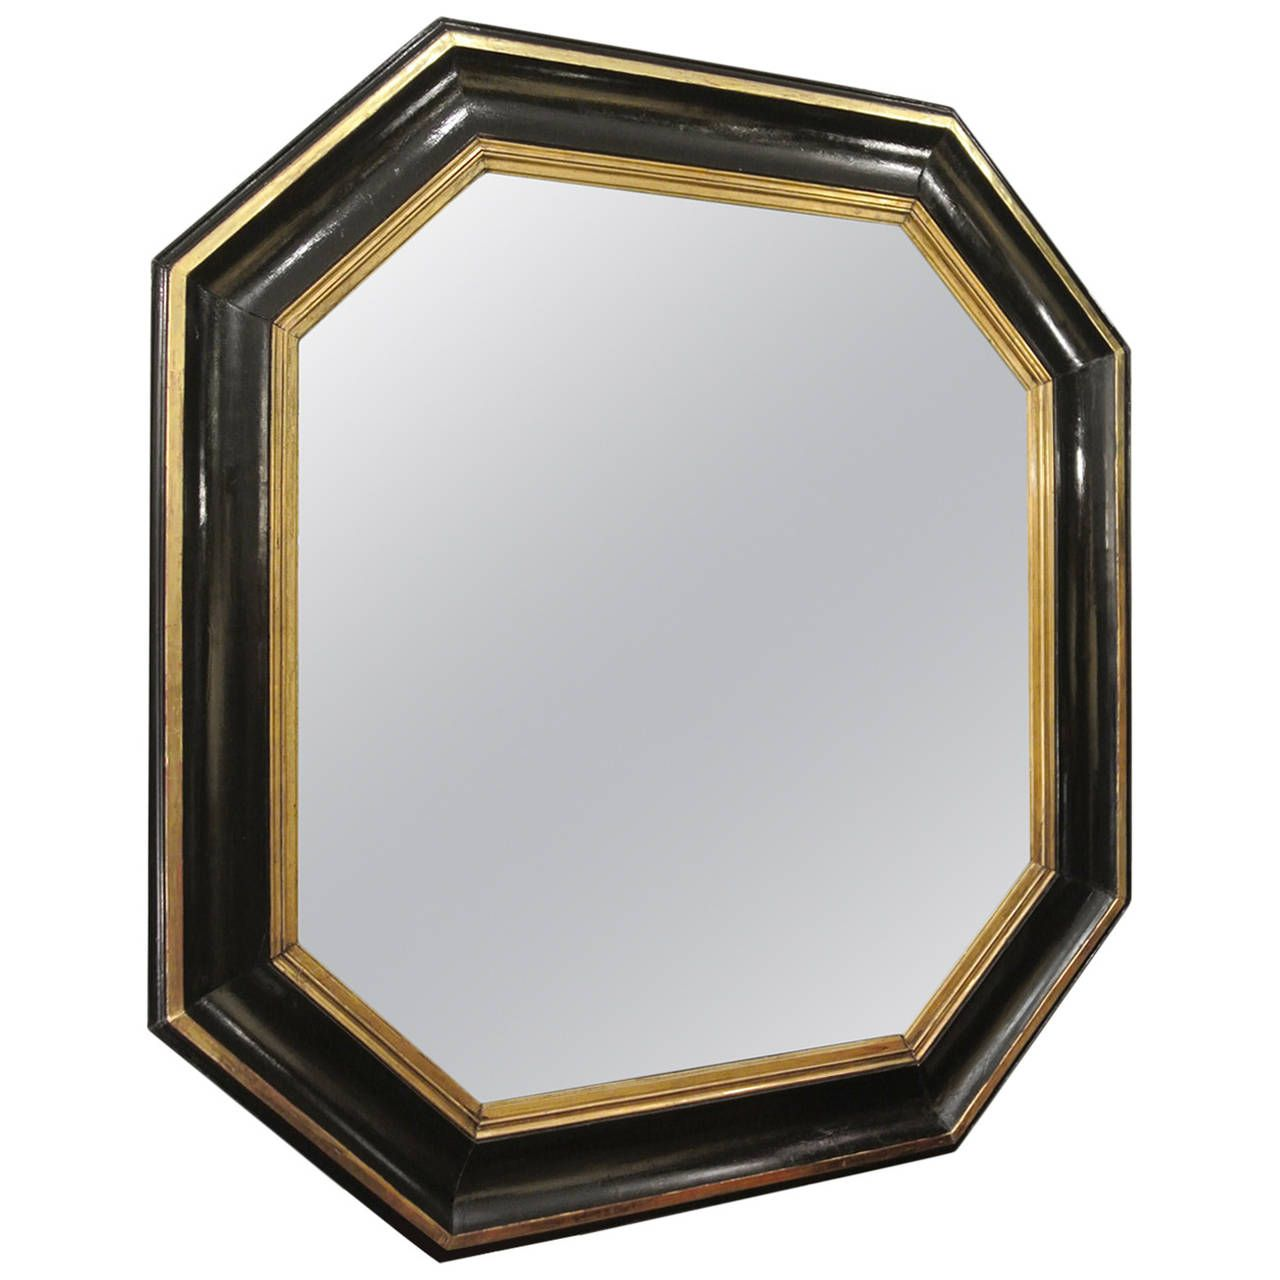 Octagonal mirror from 19th century lacquer black and gold octagonal mirror from 19th century lacquer black and gold amipublicfo Image collections